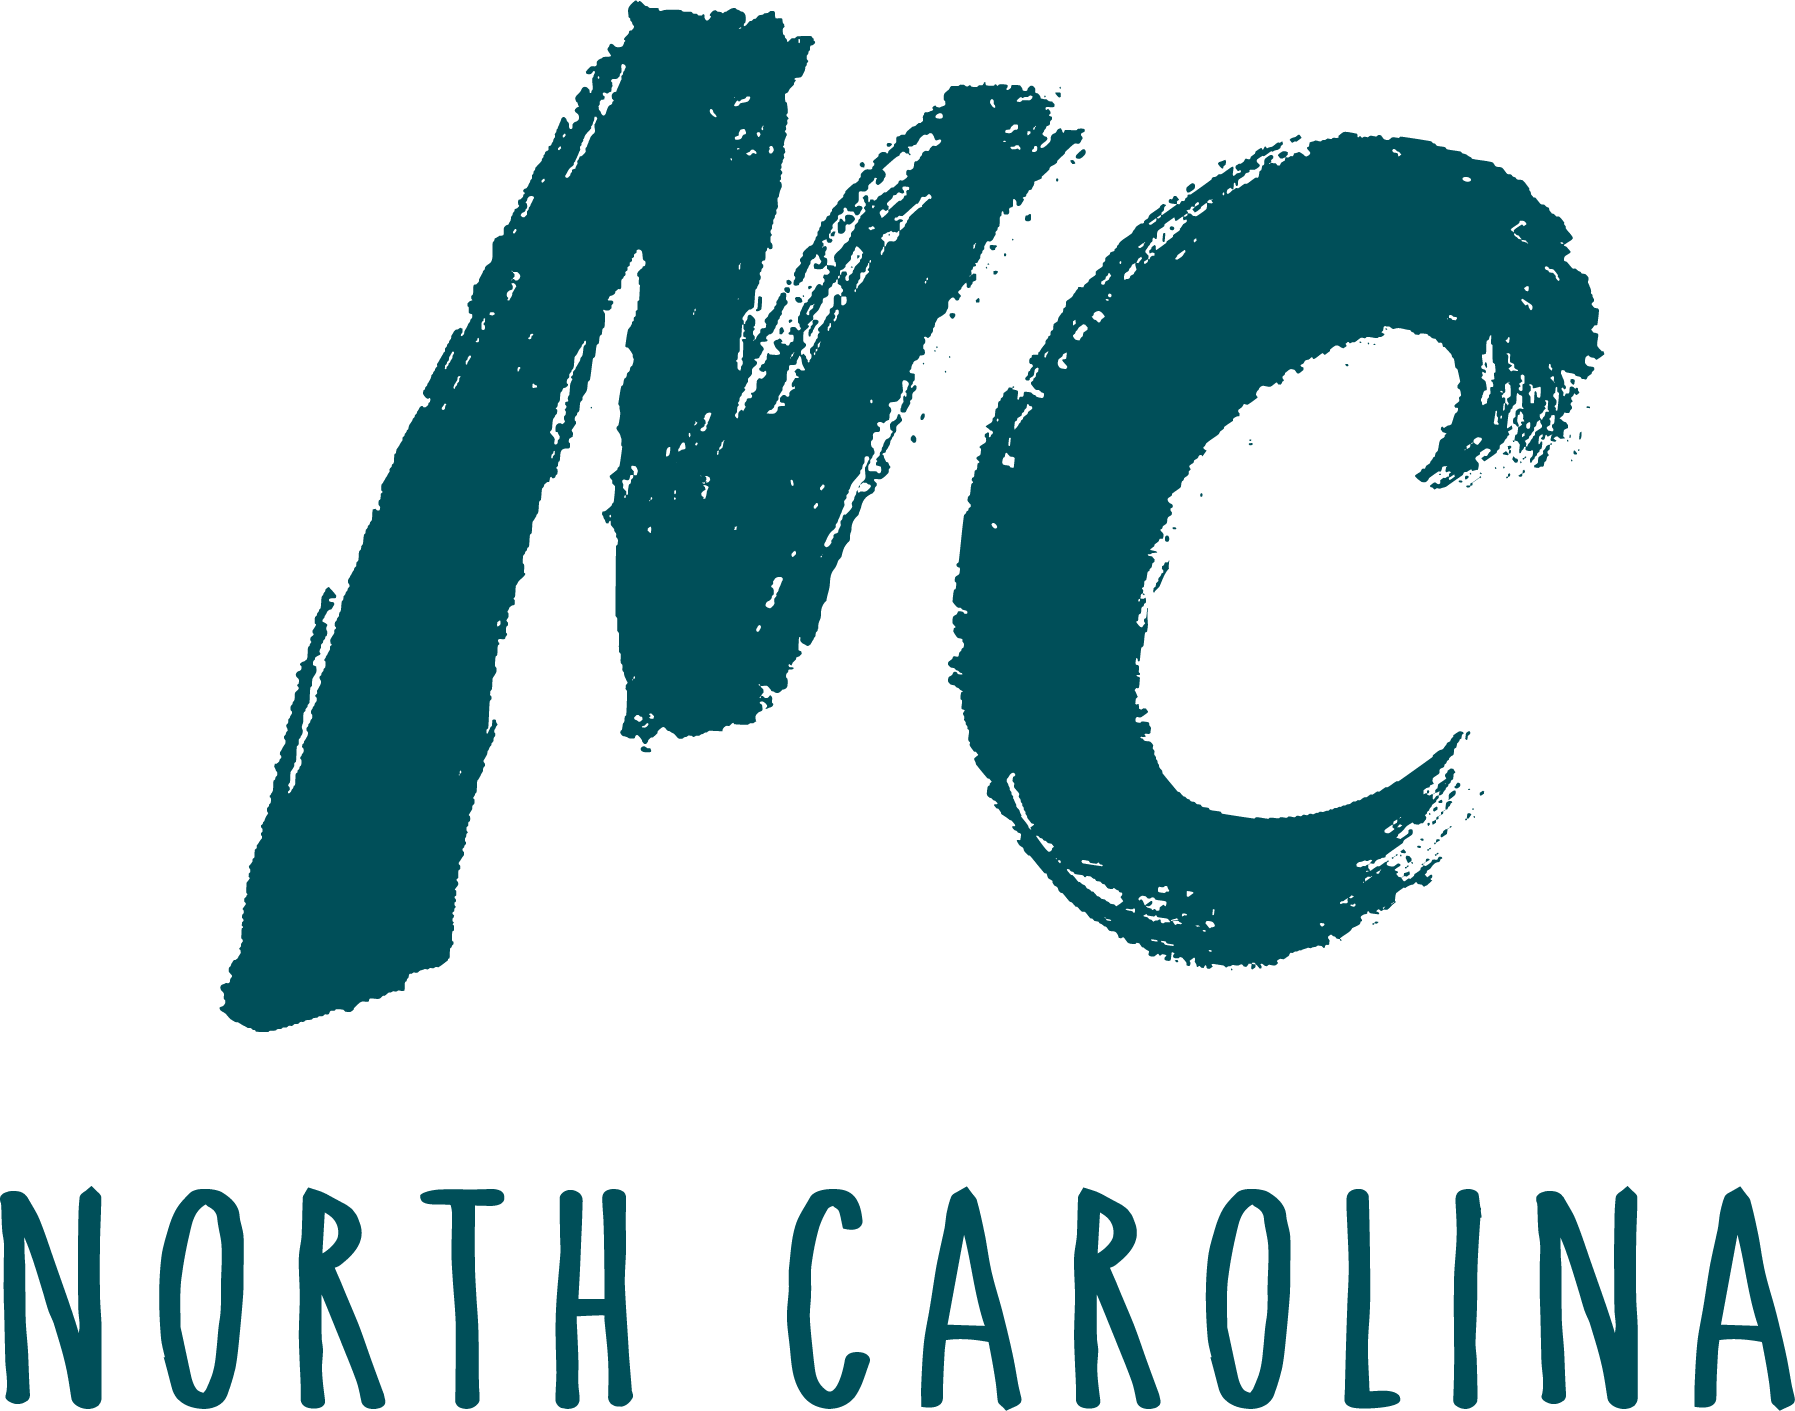 Visit North Carolina logo